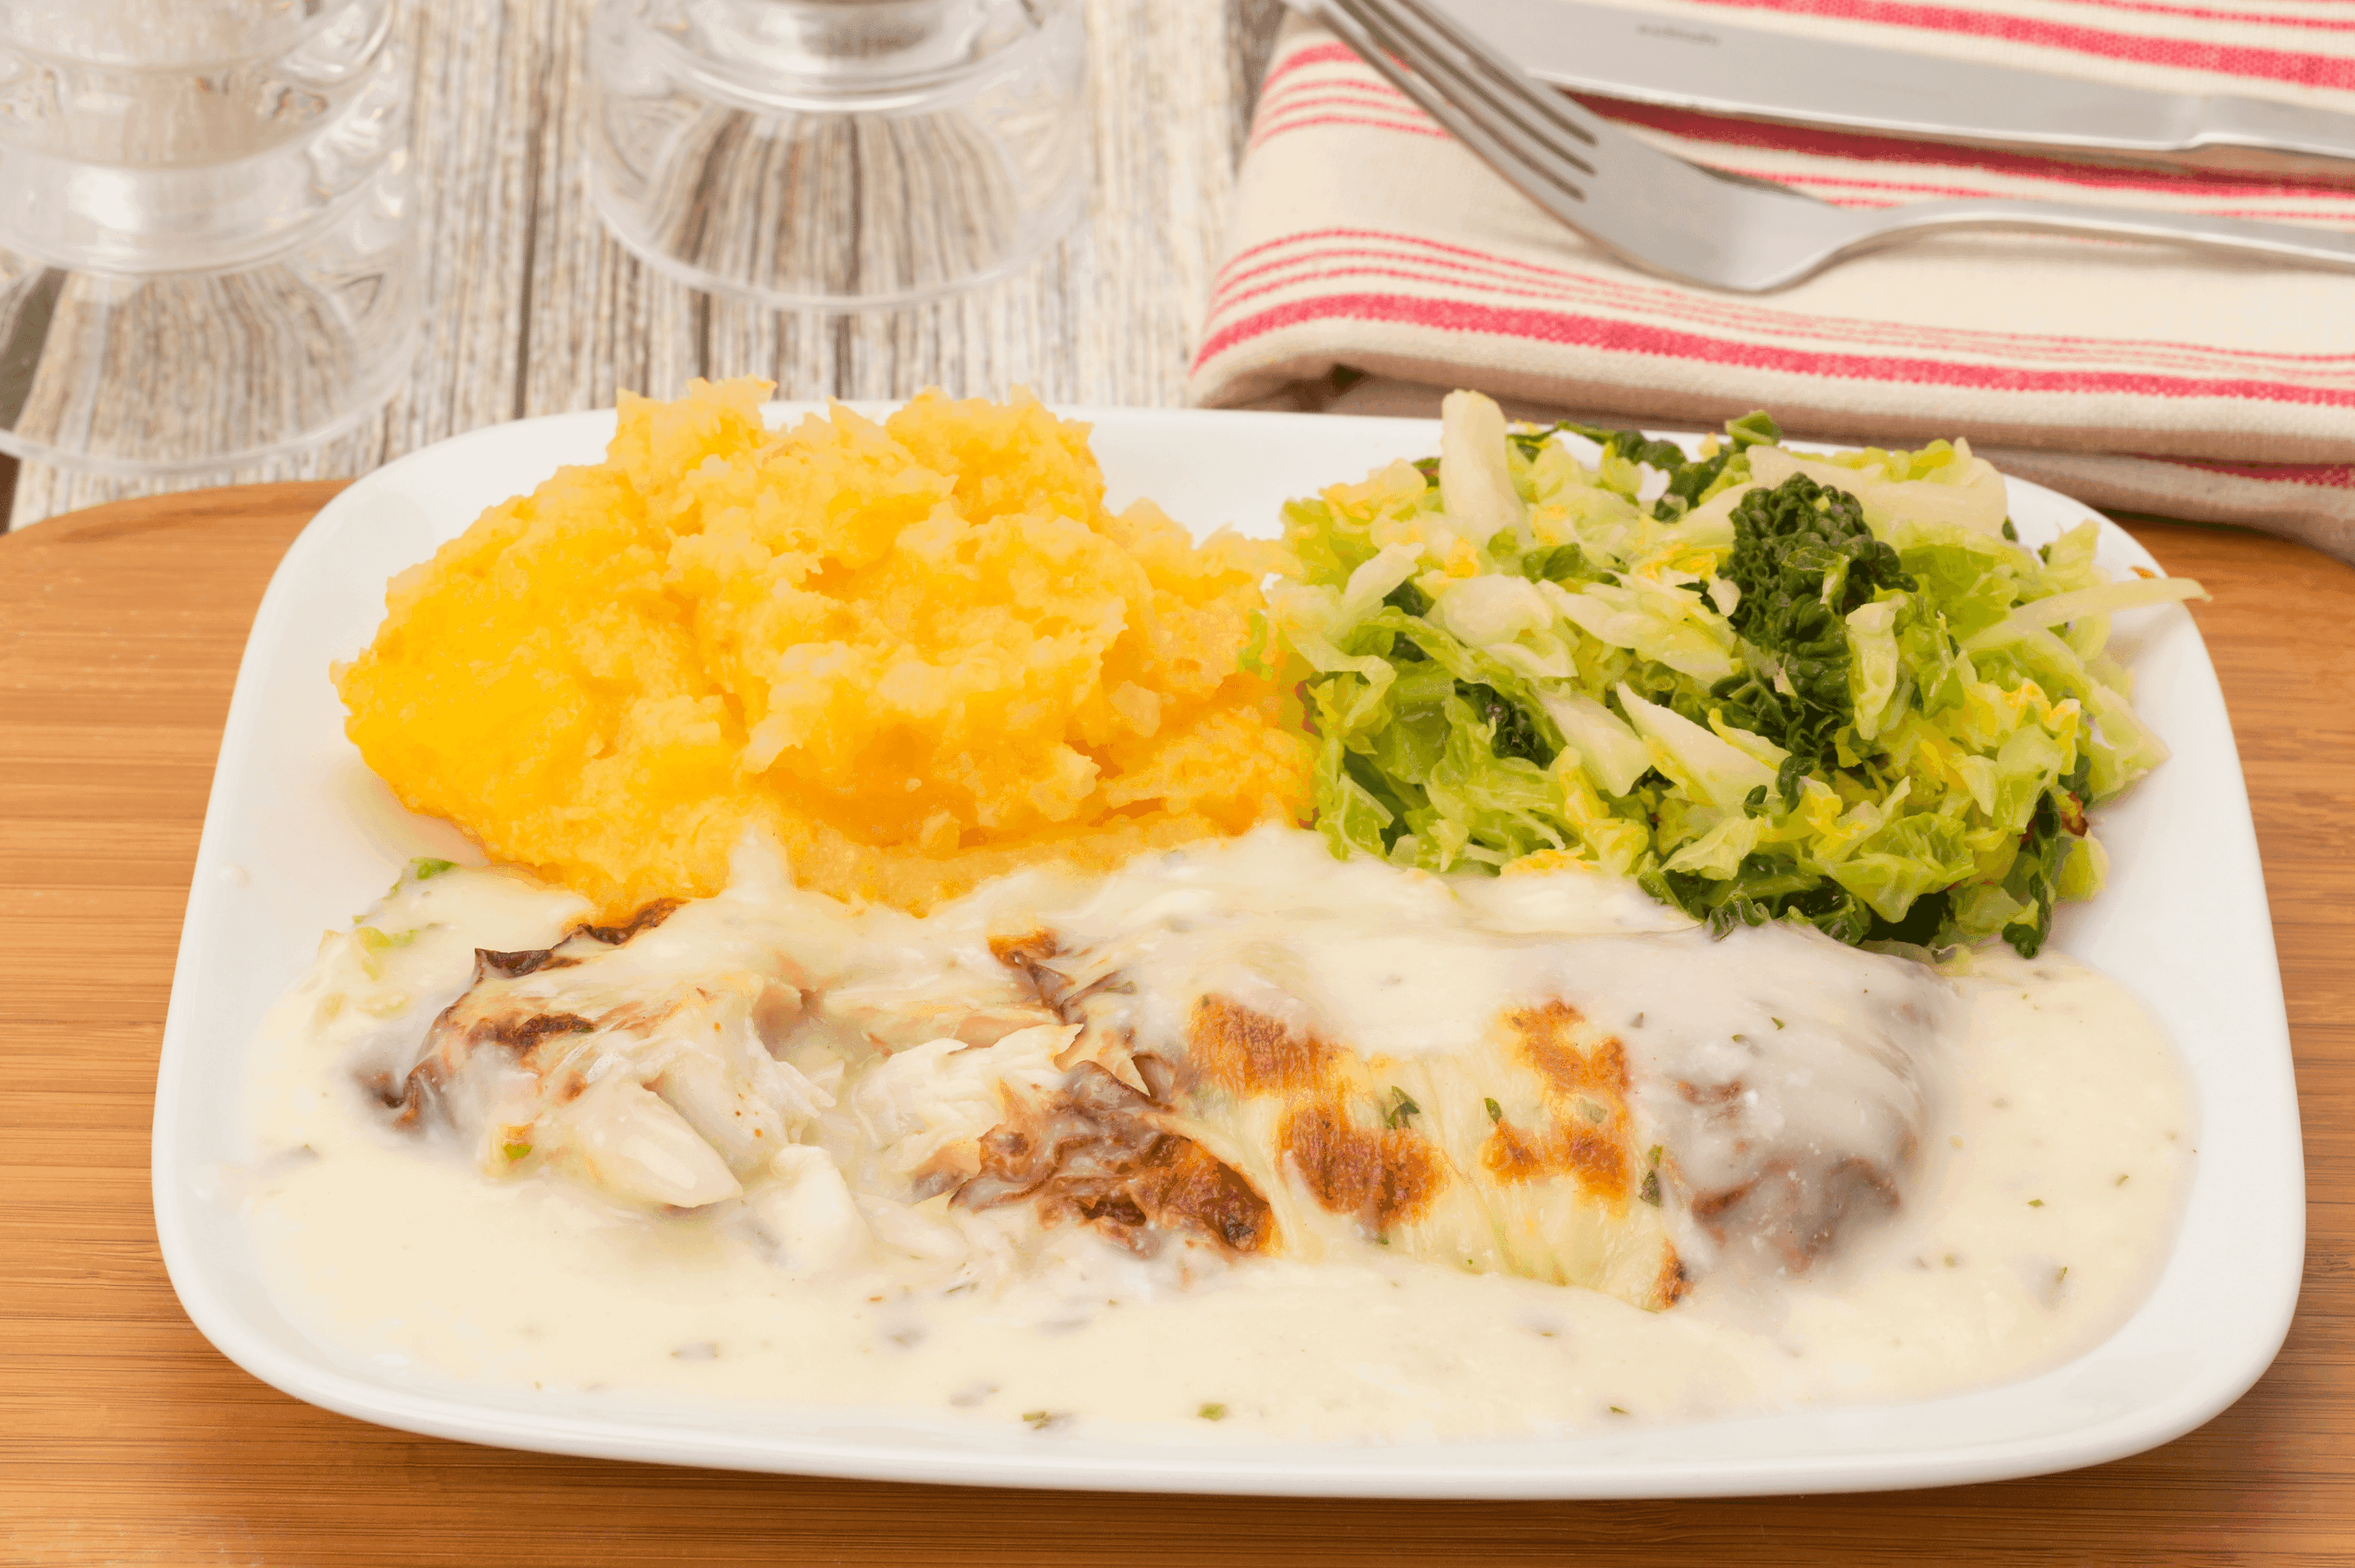 a plate of delicious baked cod served on a plate with turnip and broccoli for a healthy dinner